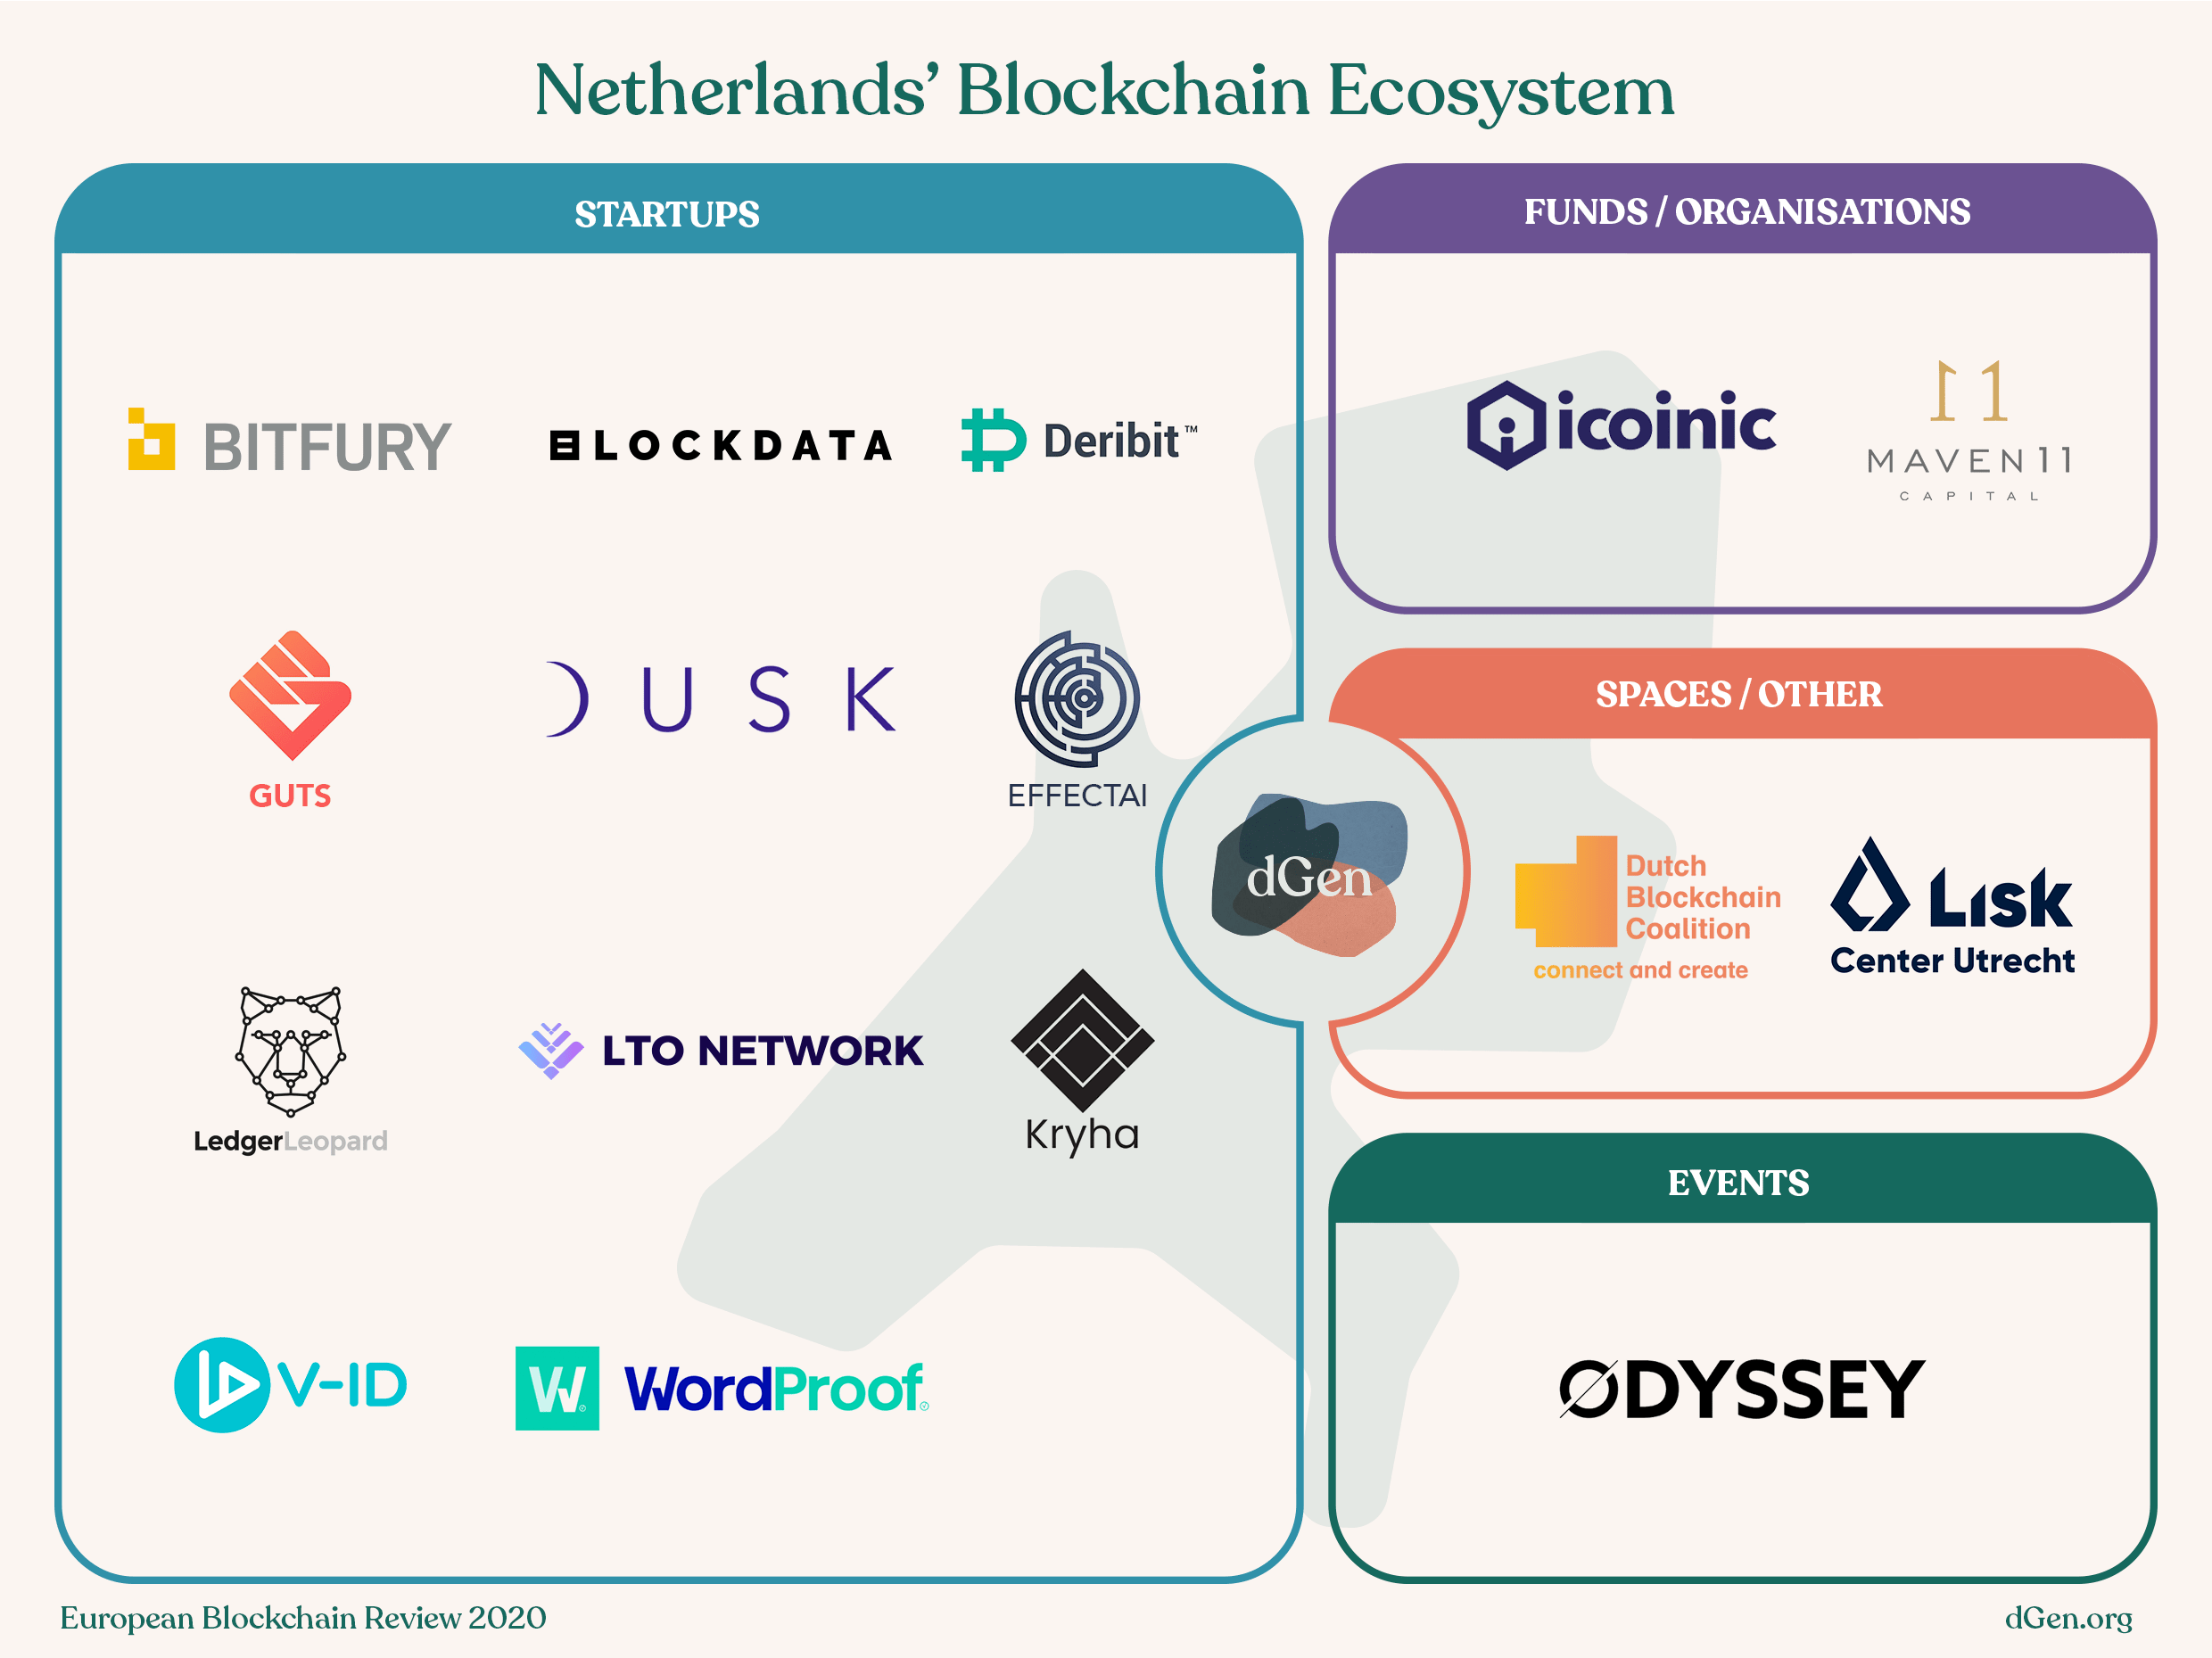 Map of Netherlands' Blockchain Ecosystem, with space for Startups, Funds/Organisations, Spaces/Other, and Events.